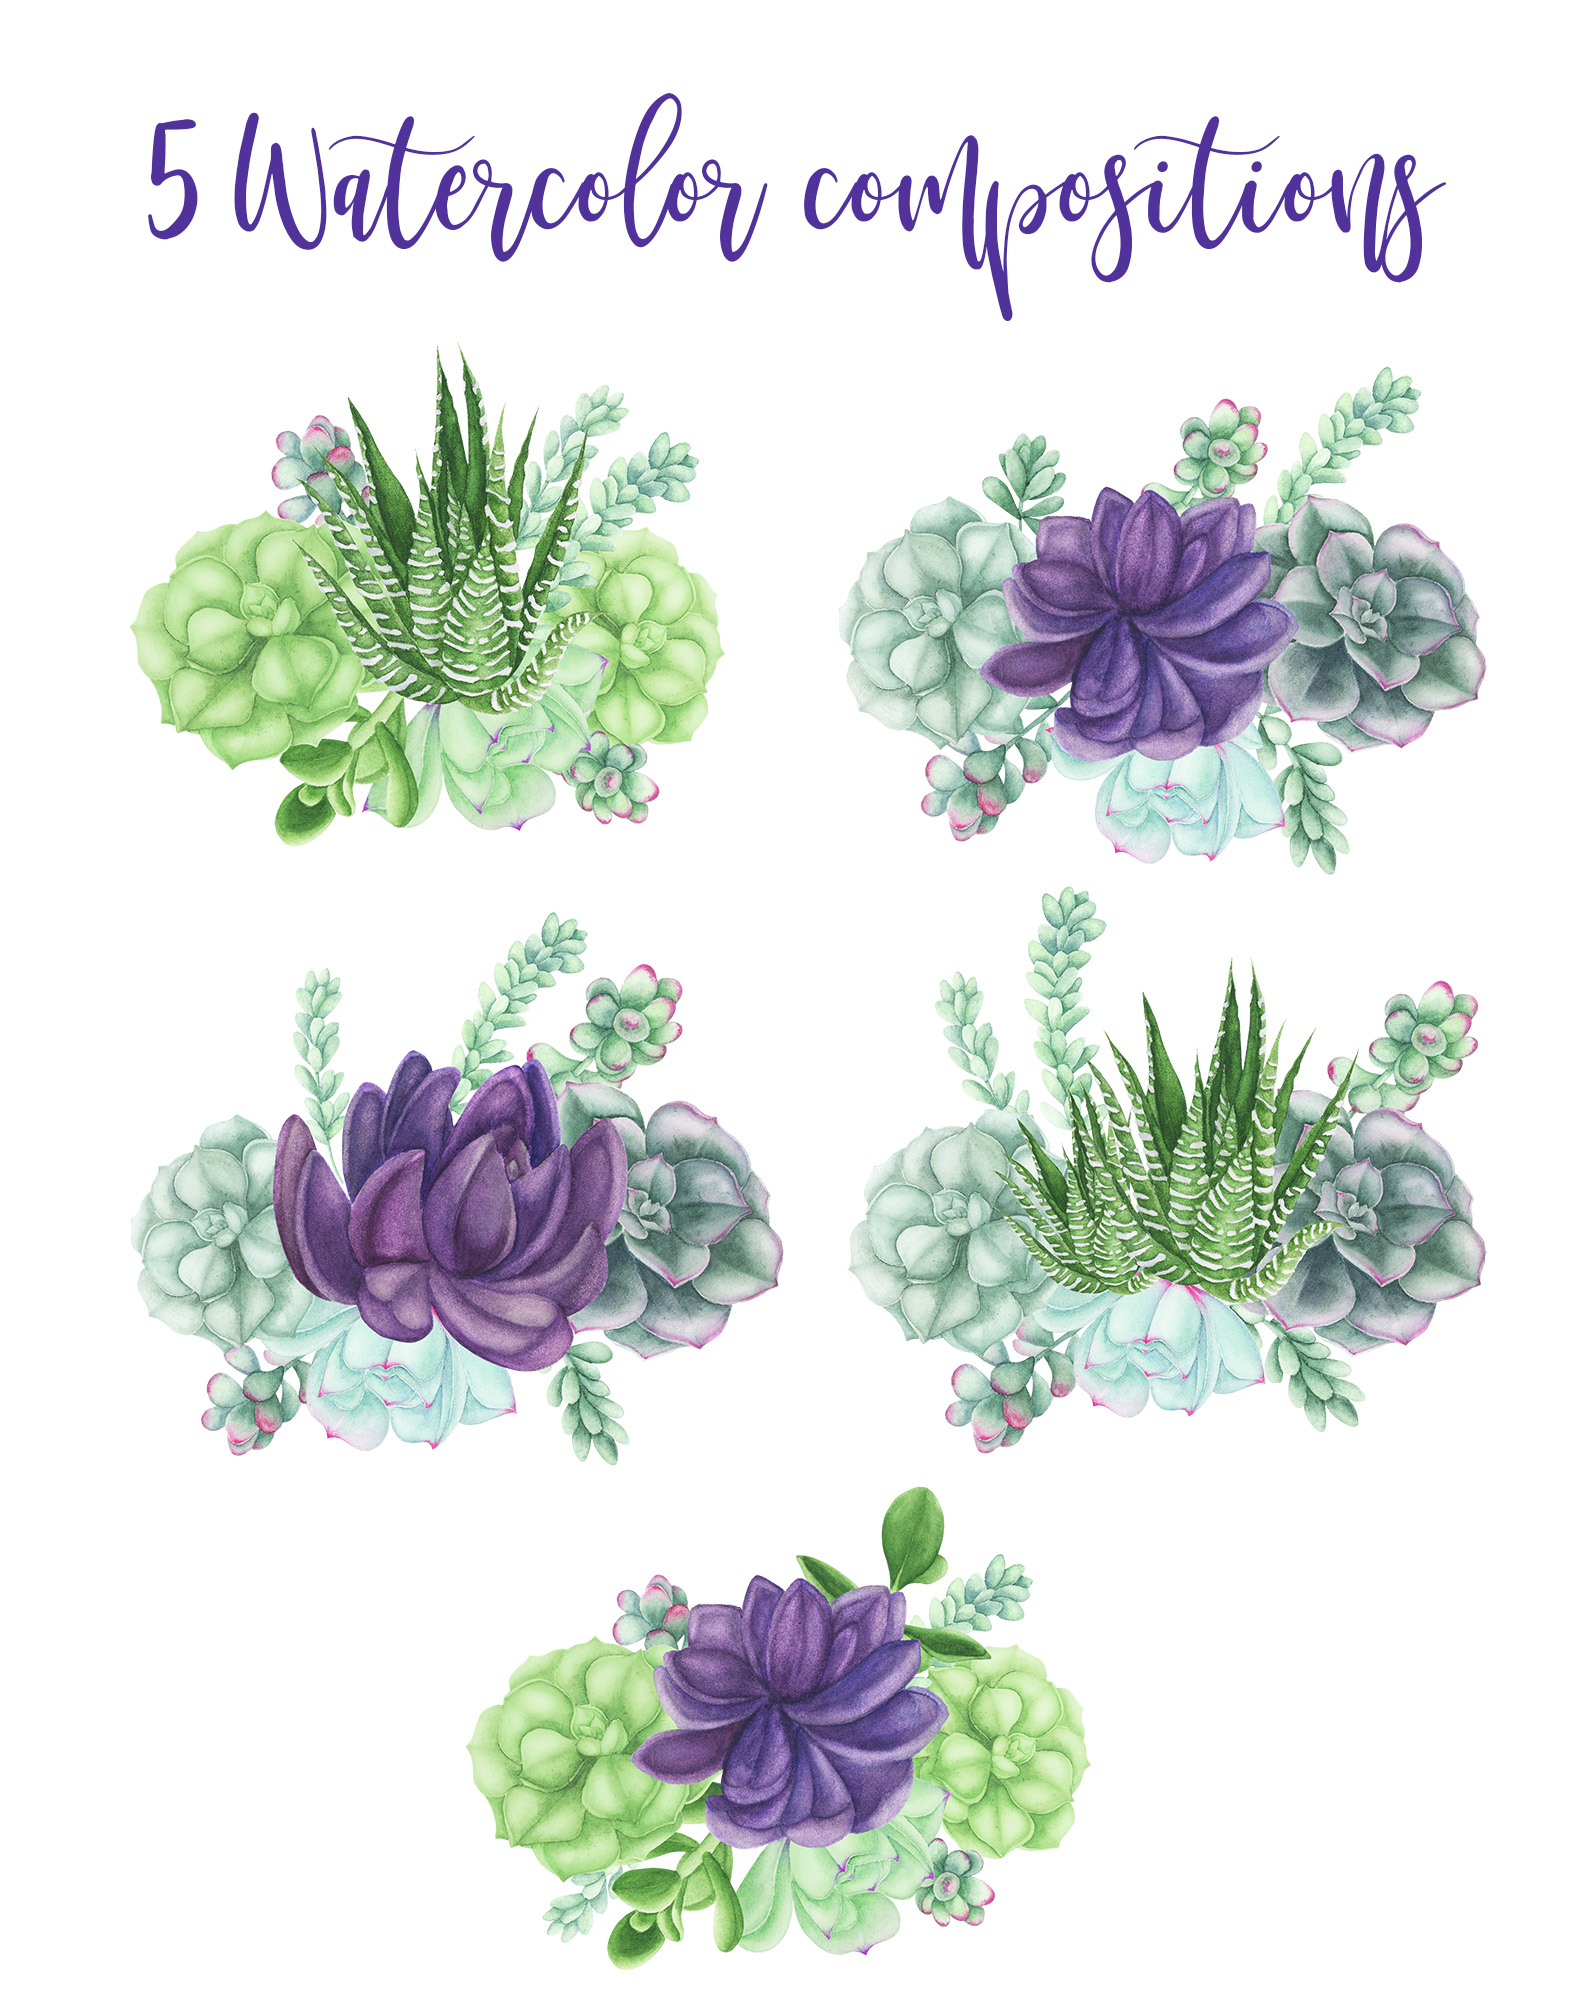 Watercolor Succulents Compositions example image 2